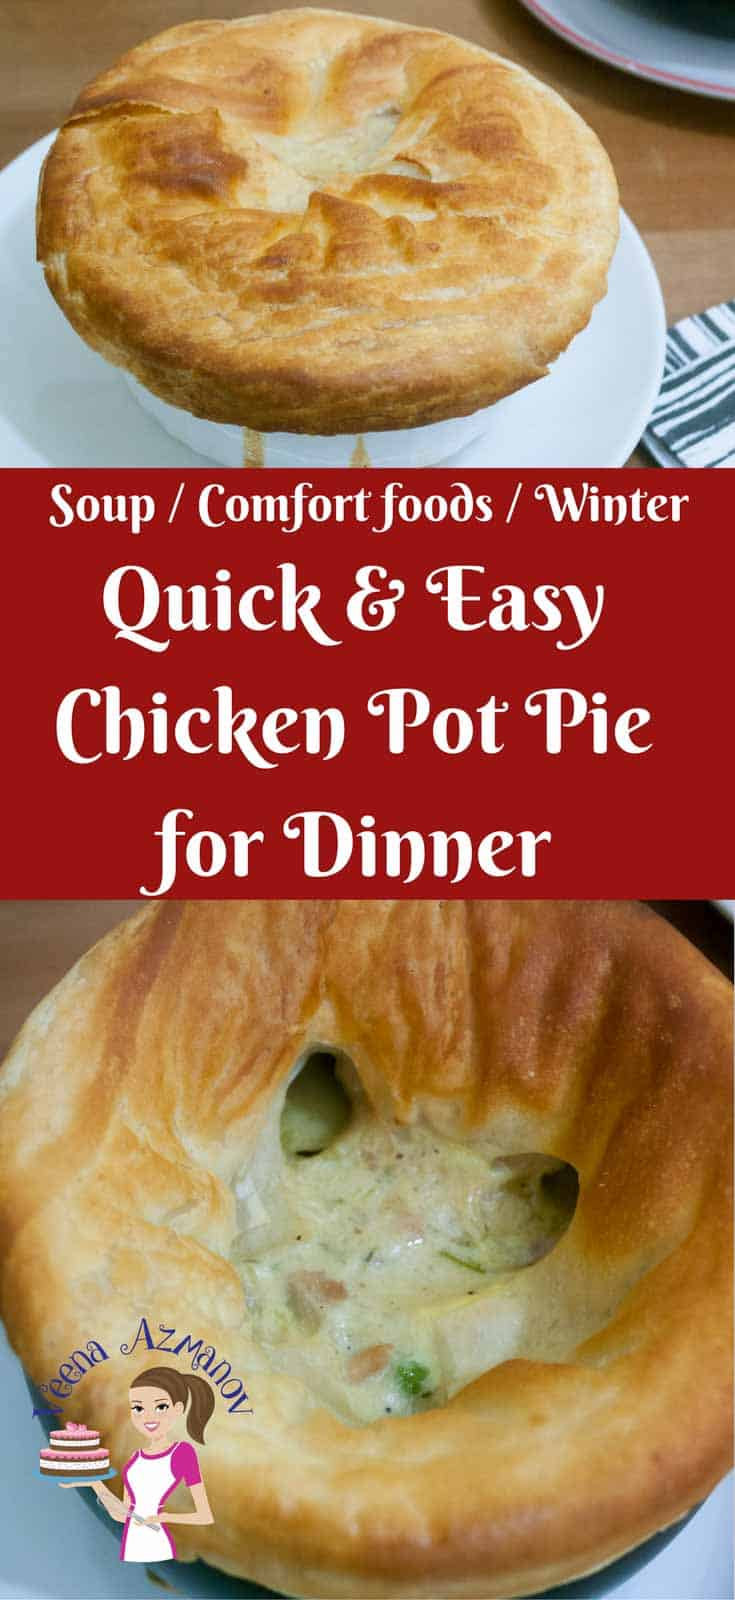 Quick and easy chicken pot pie for dinner veena azmanov recipe card quick and easy chicken pot pie for dinner nothing says comfort food forumfinder Gallery